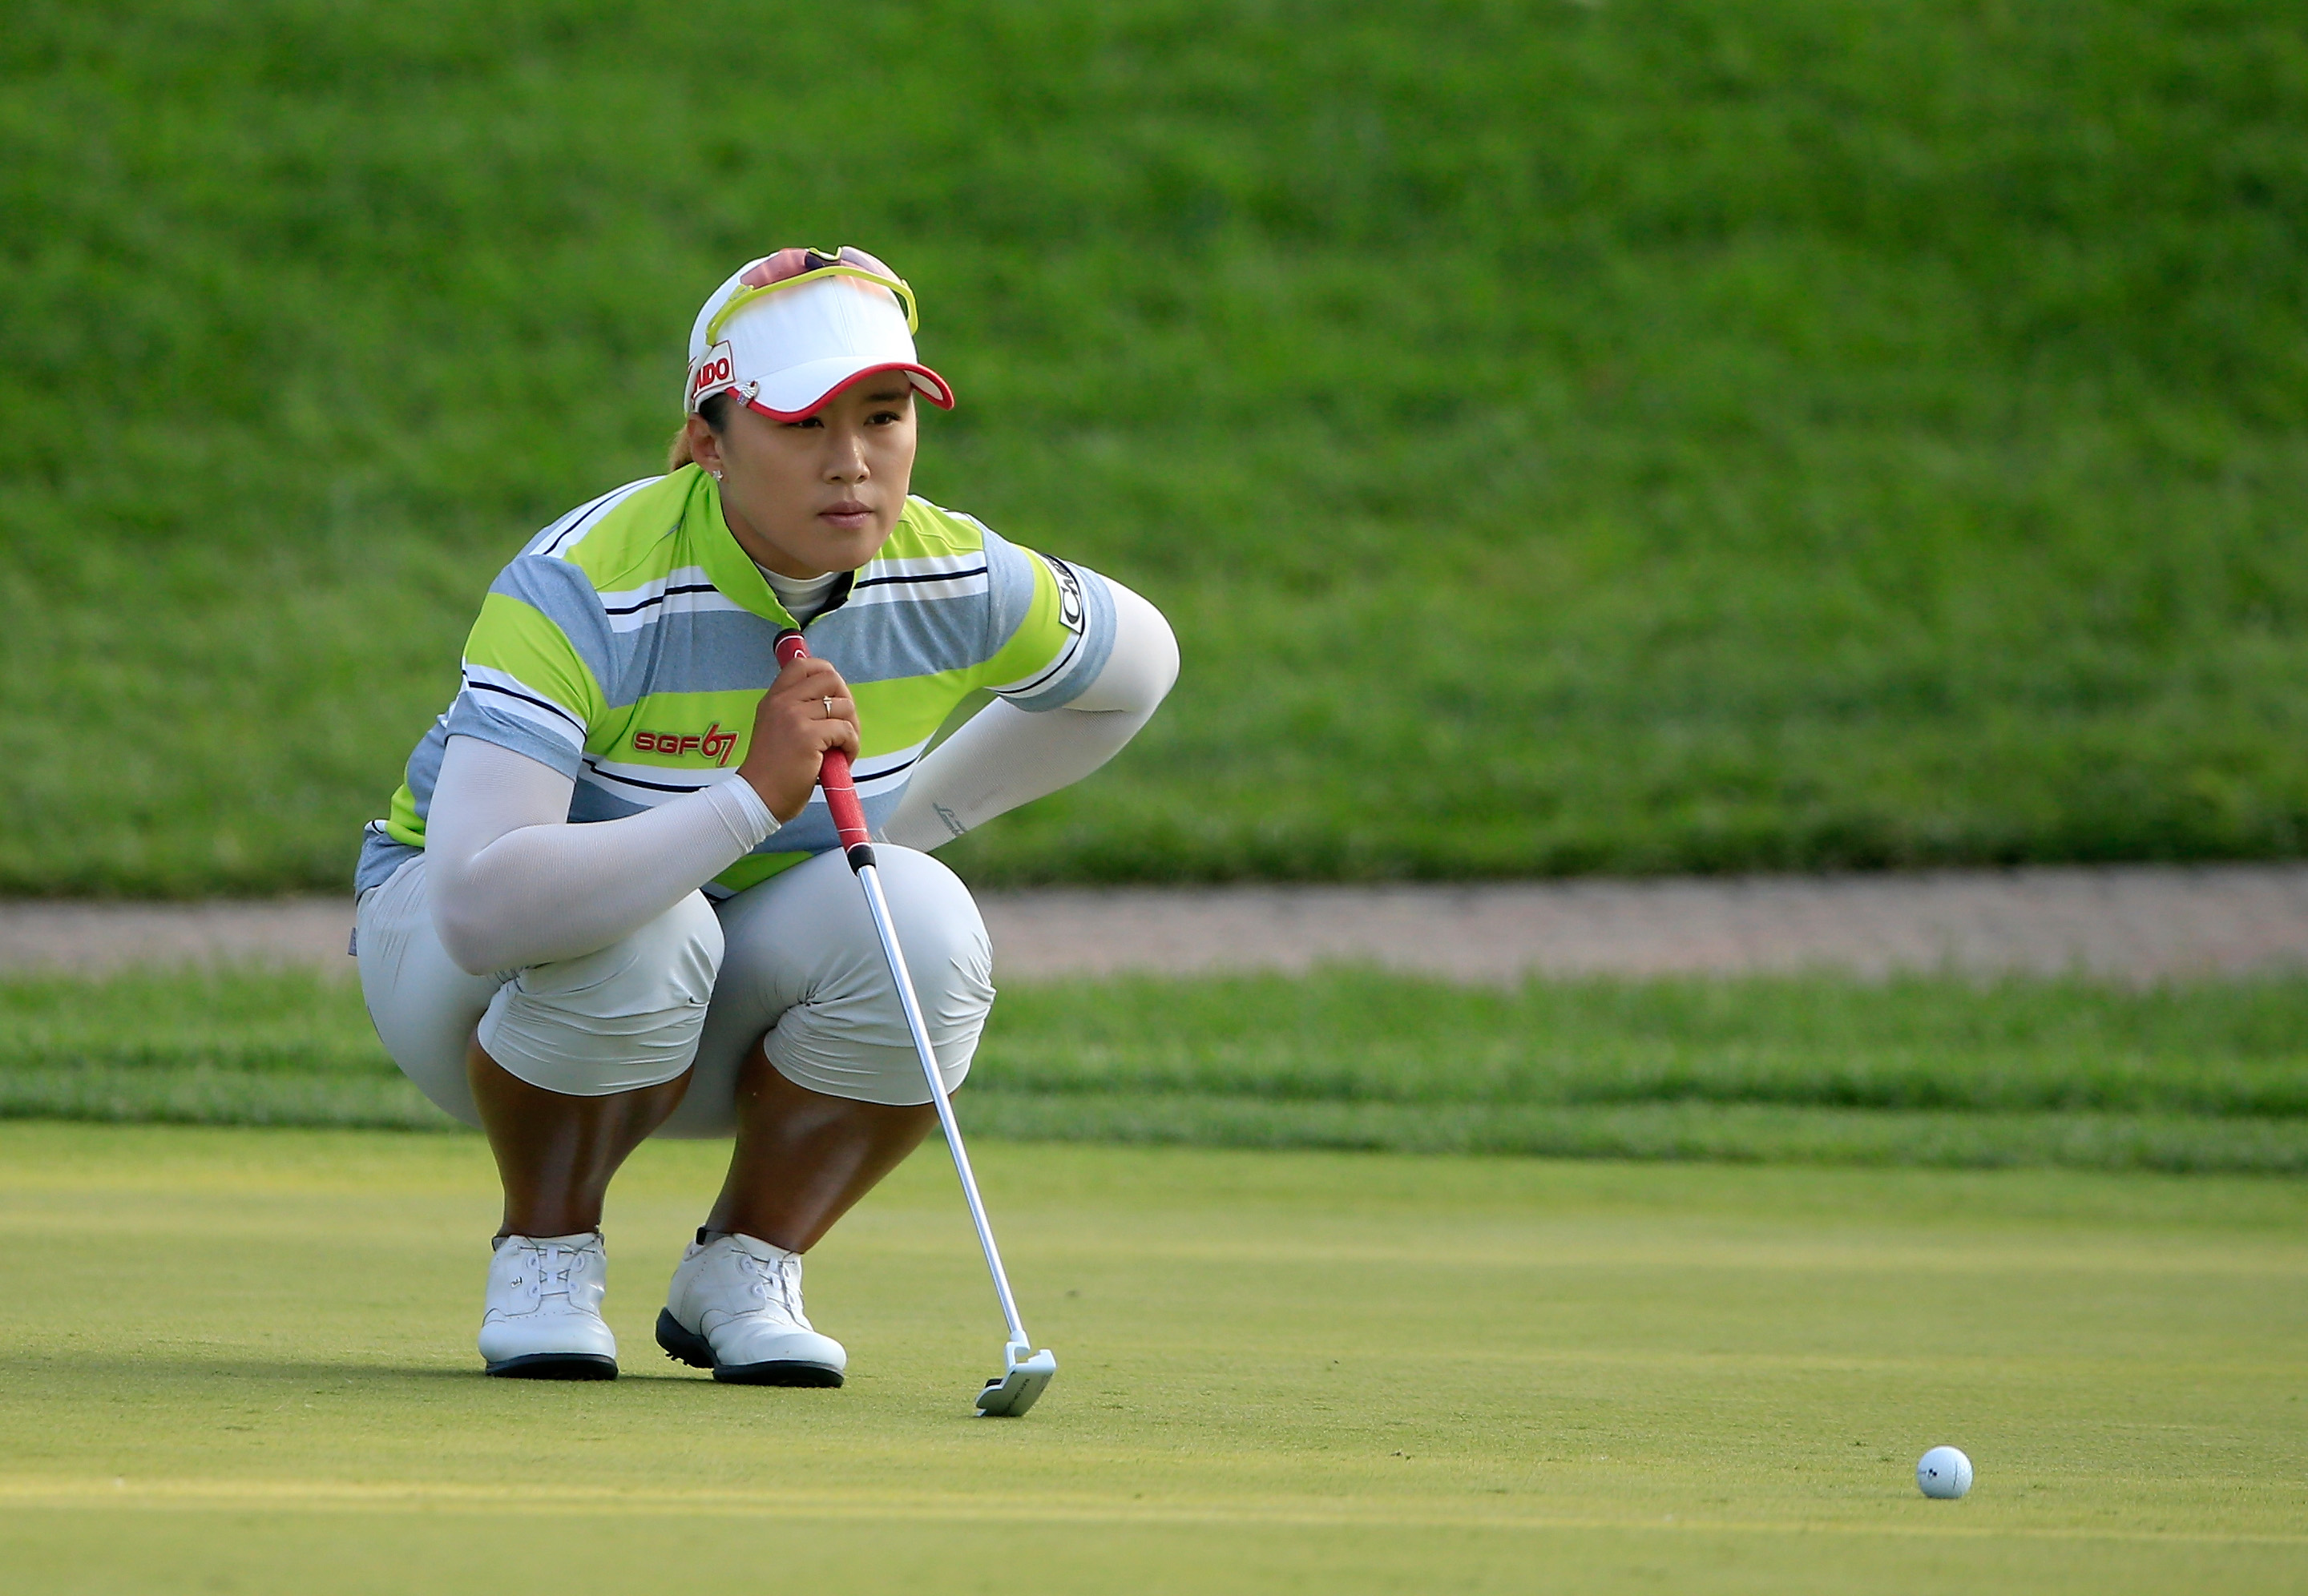 Amy Yang lines up a putt on the 18th hole during the second round of the U.S. Women's Open.